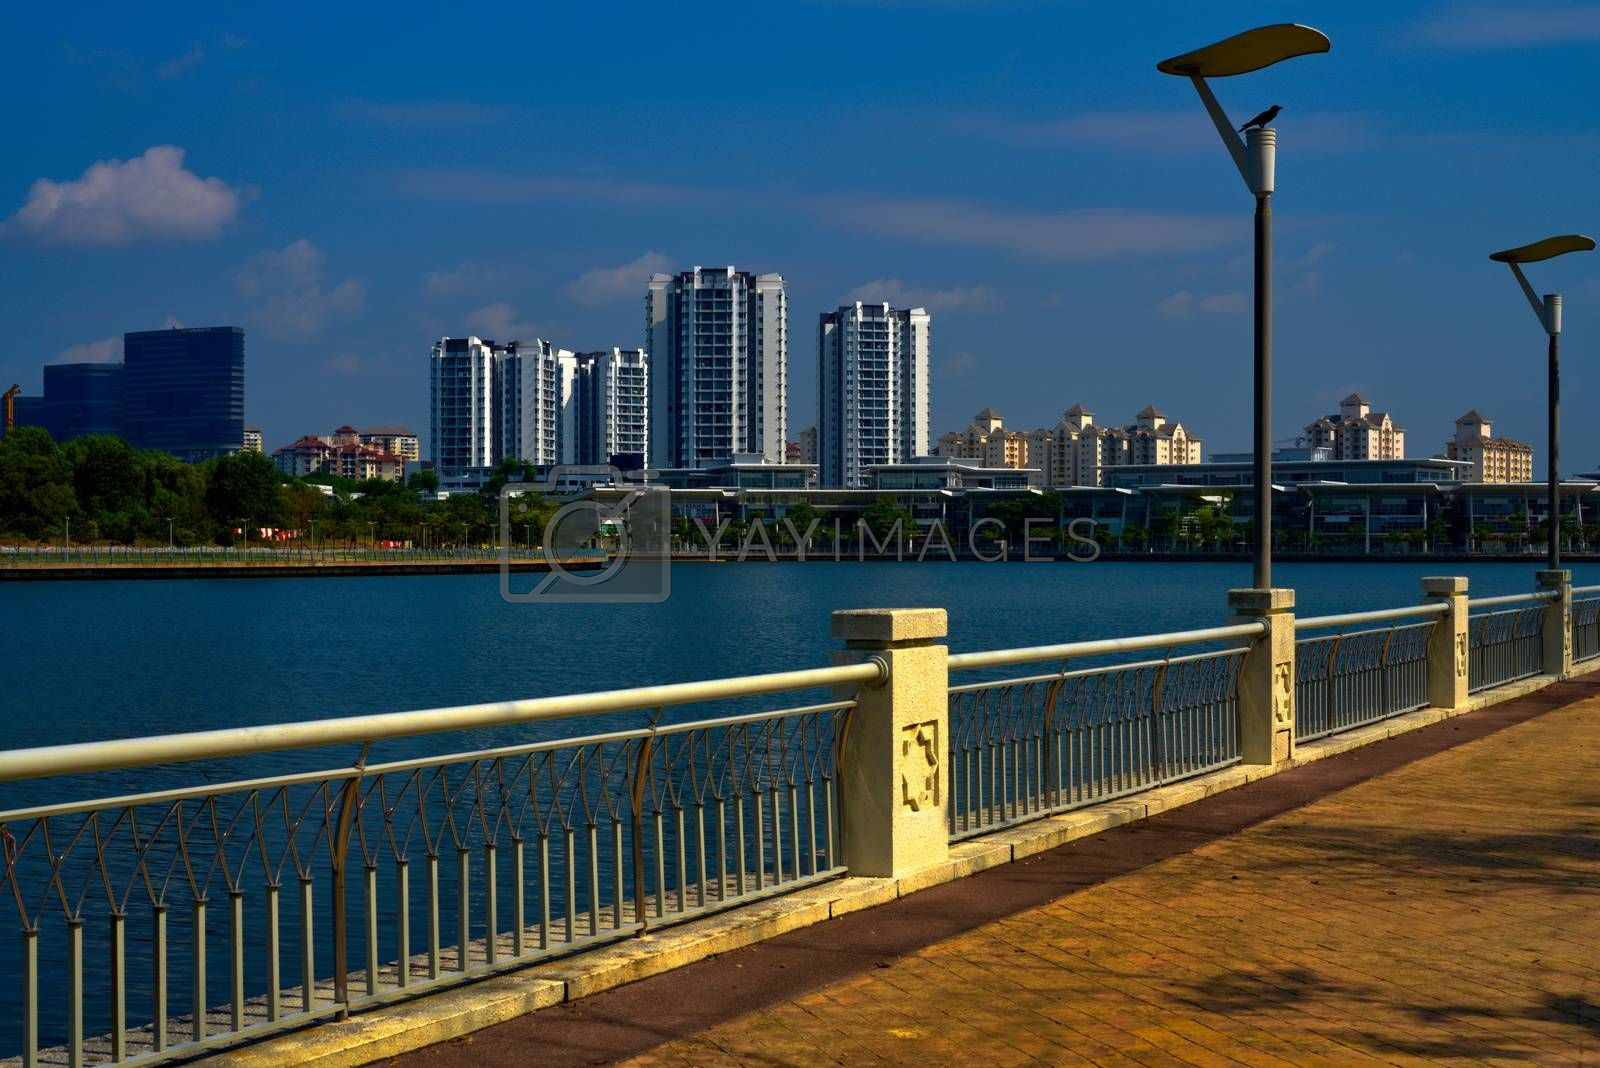 Putrajaya lake promenade with residential area and skyscrapers